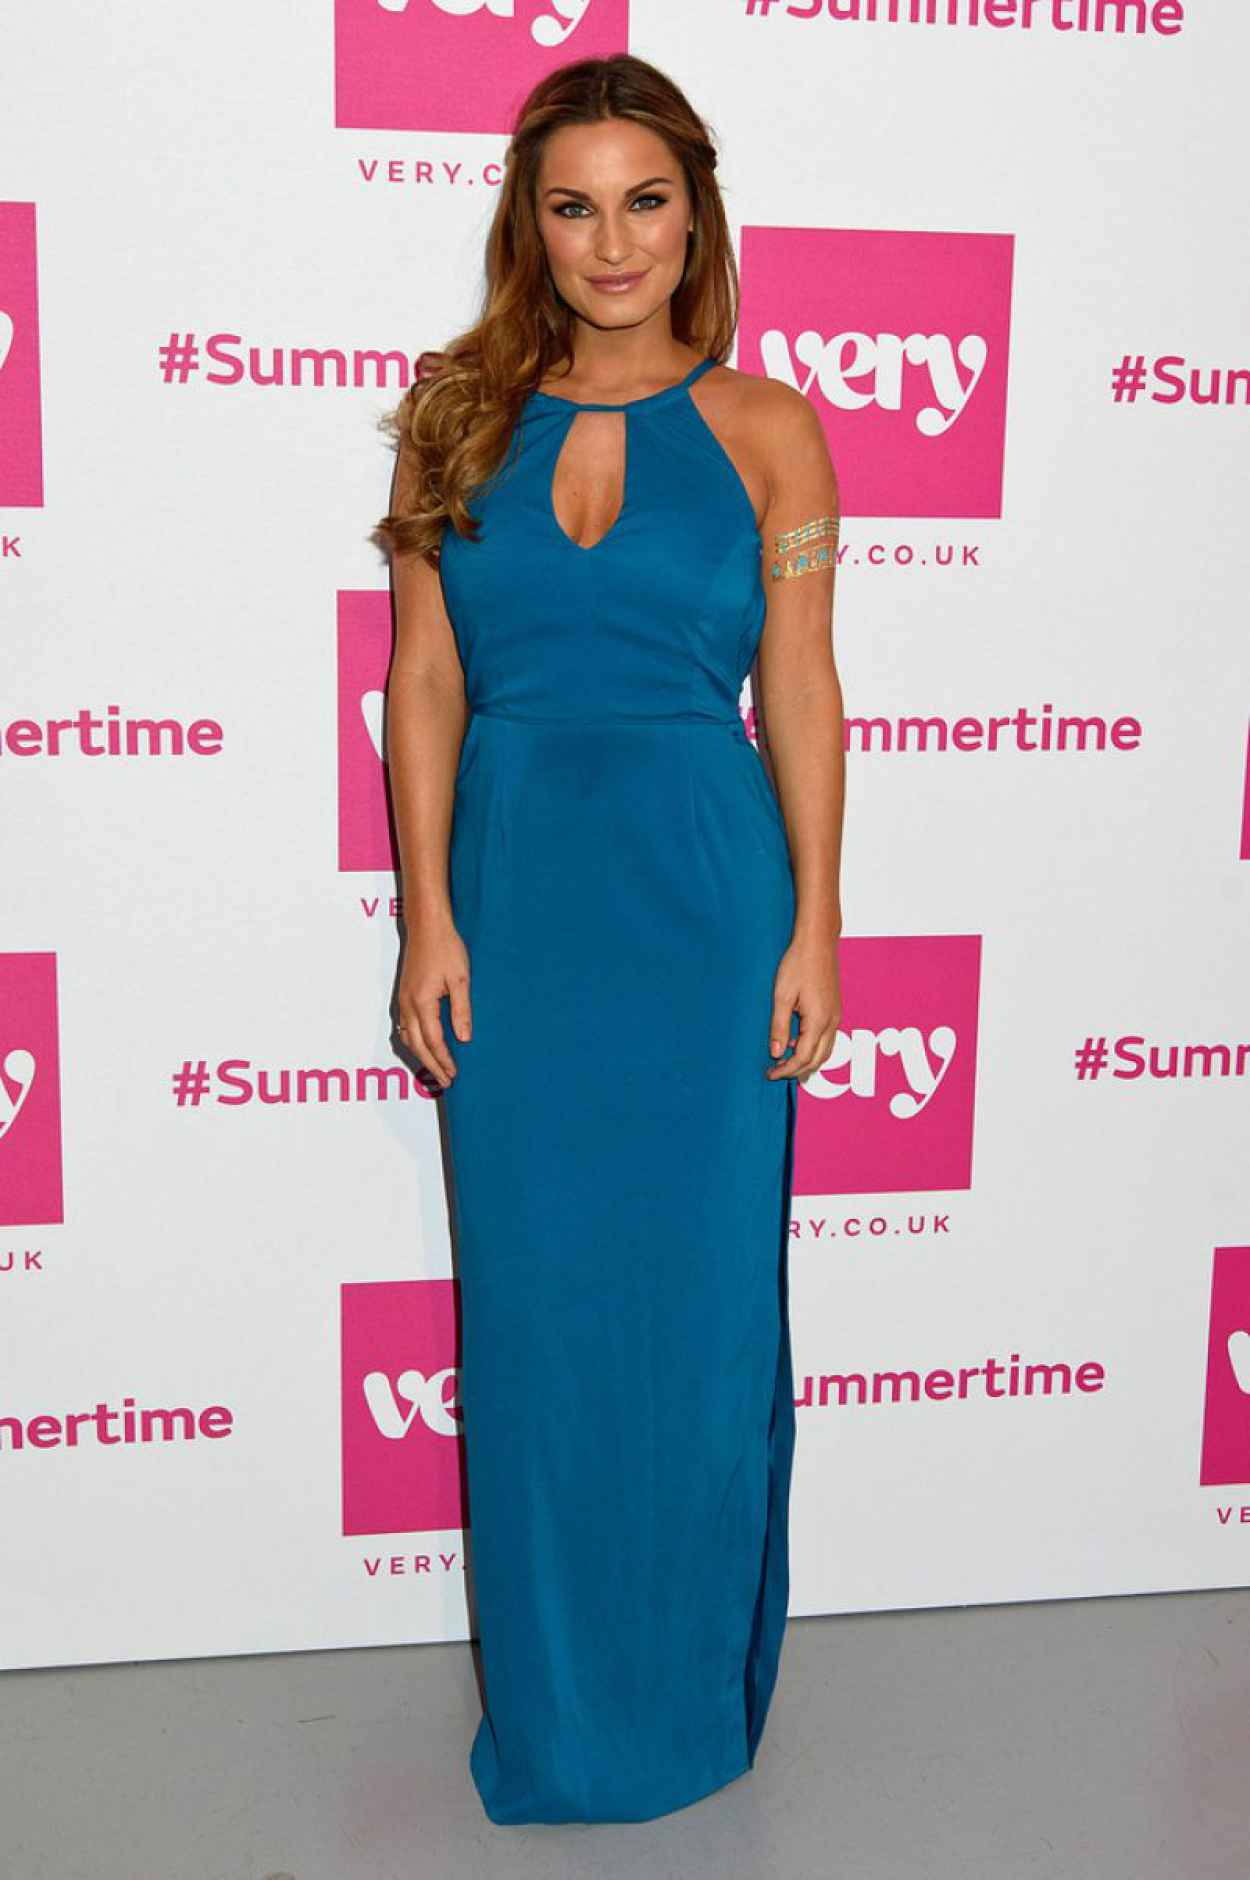 Sam Faiers - Very.co.uk Summertime party in London, August 2015-3